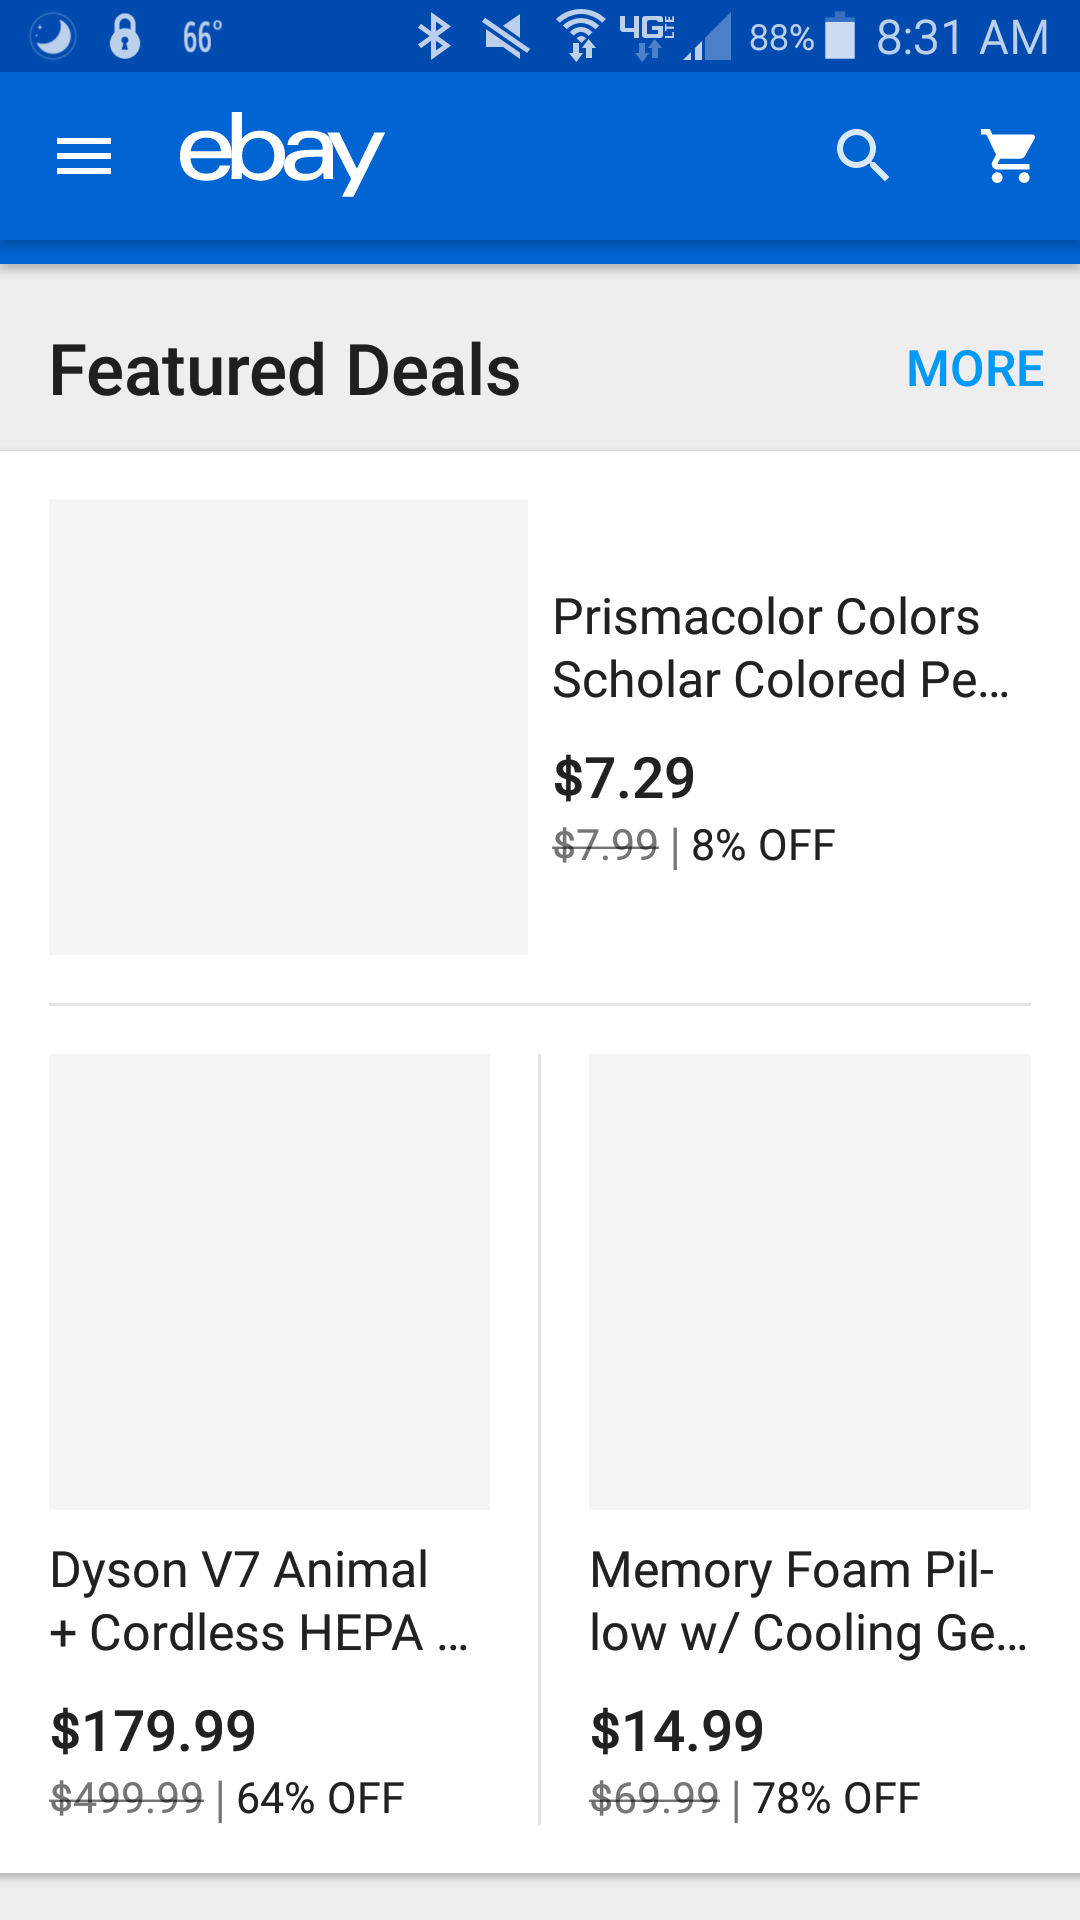 Pictures no longer show up in app for any listings - The eBay Community